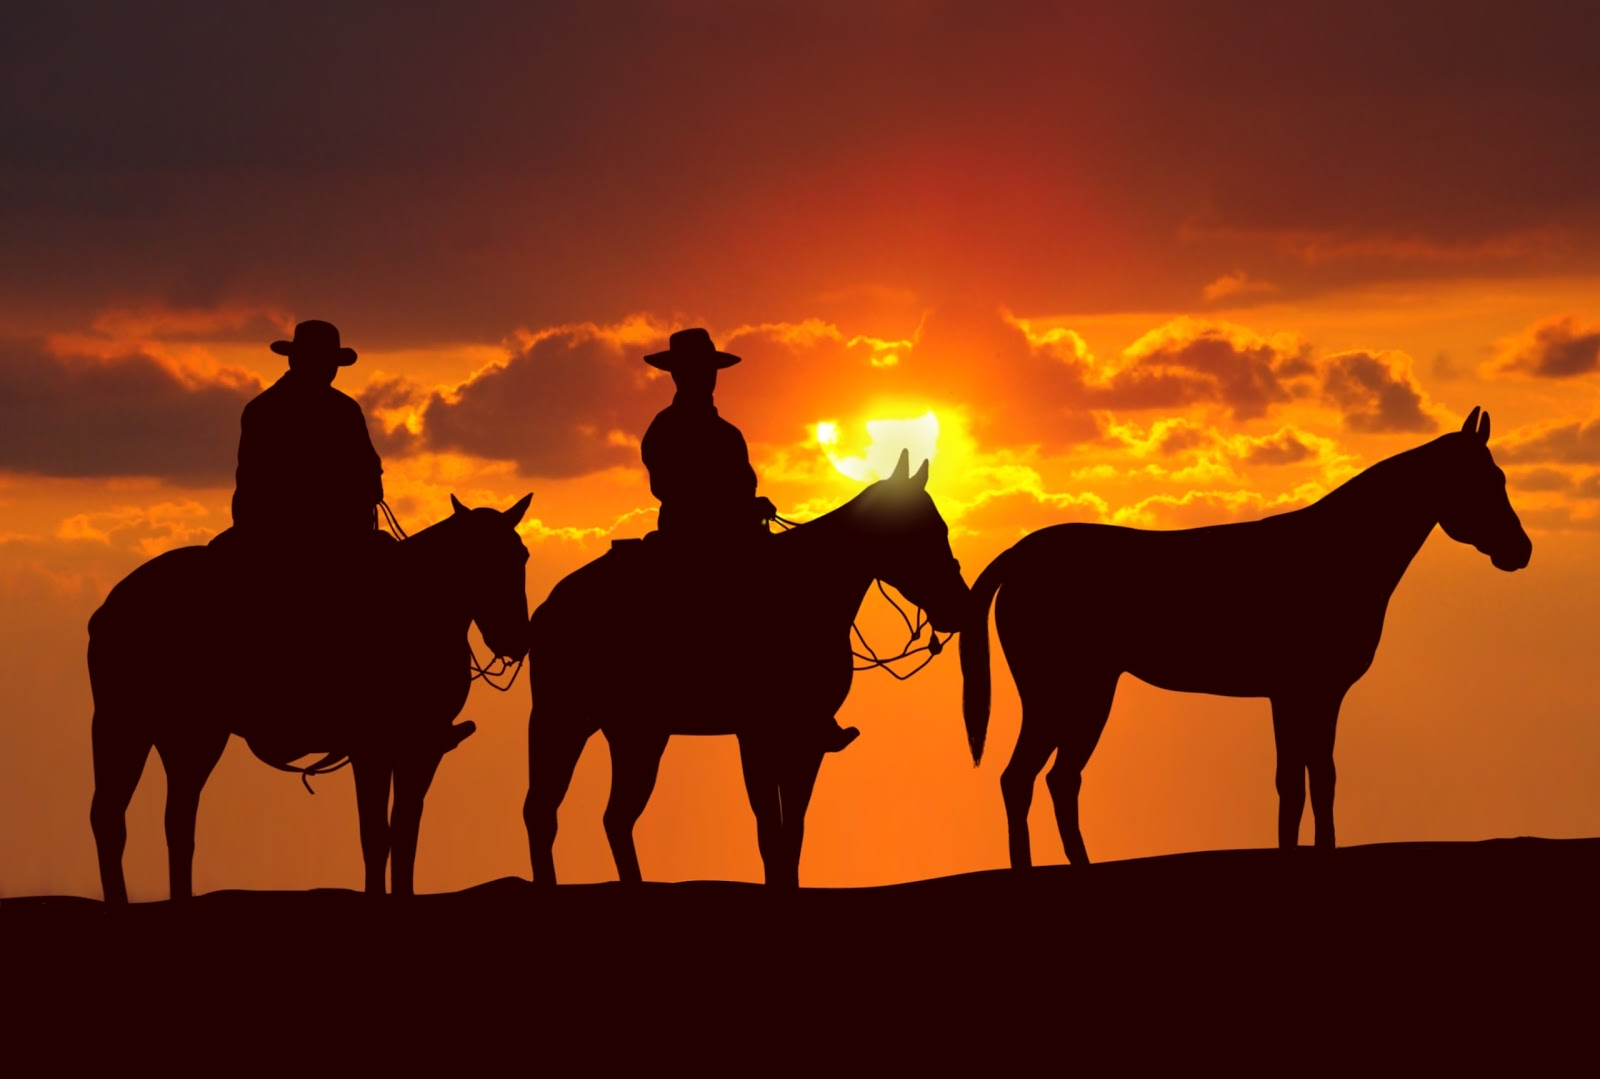 Cowboys on The Trail The Singing Cowboy 1600x1079